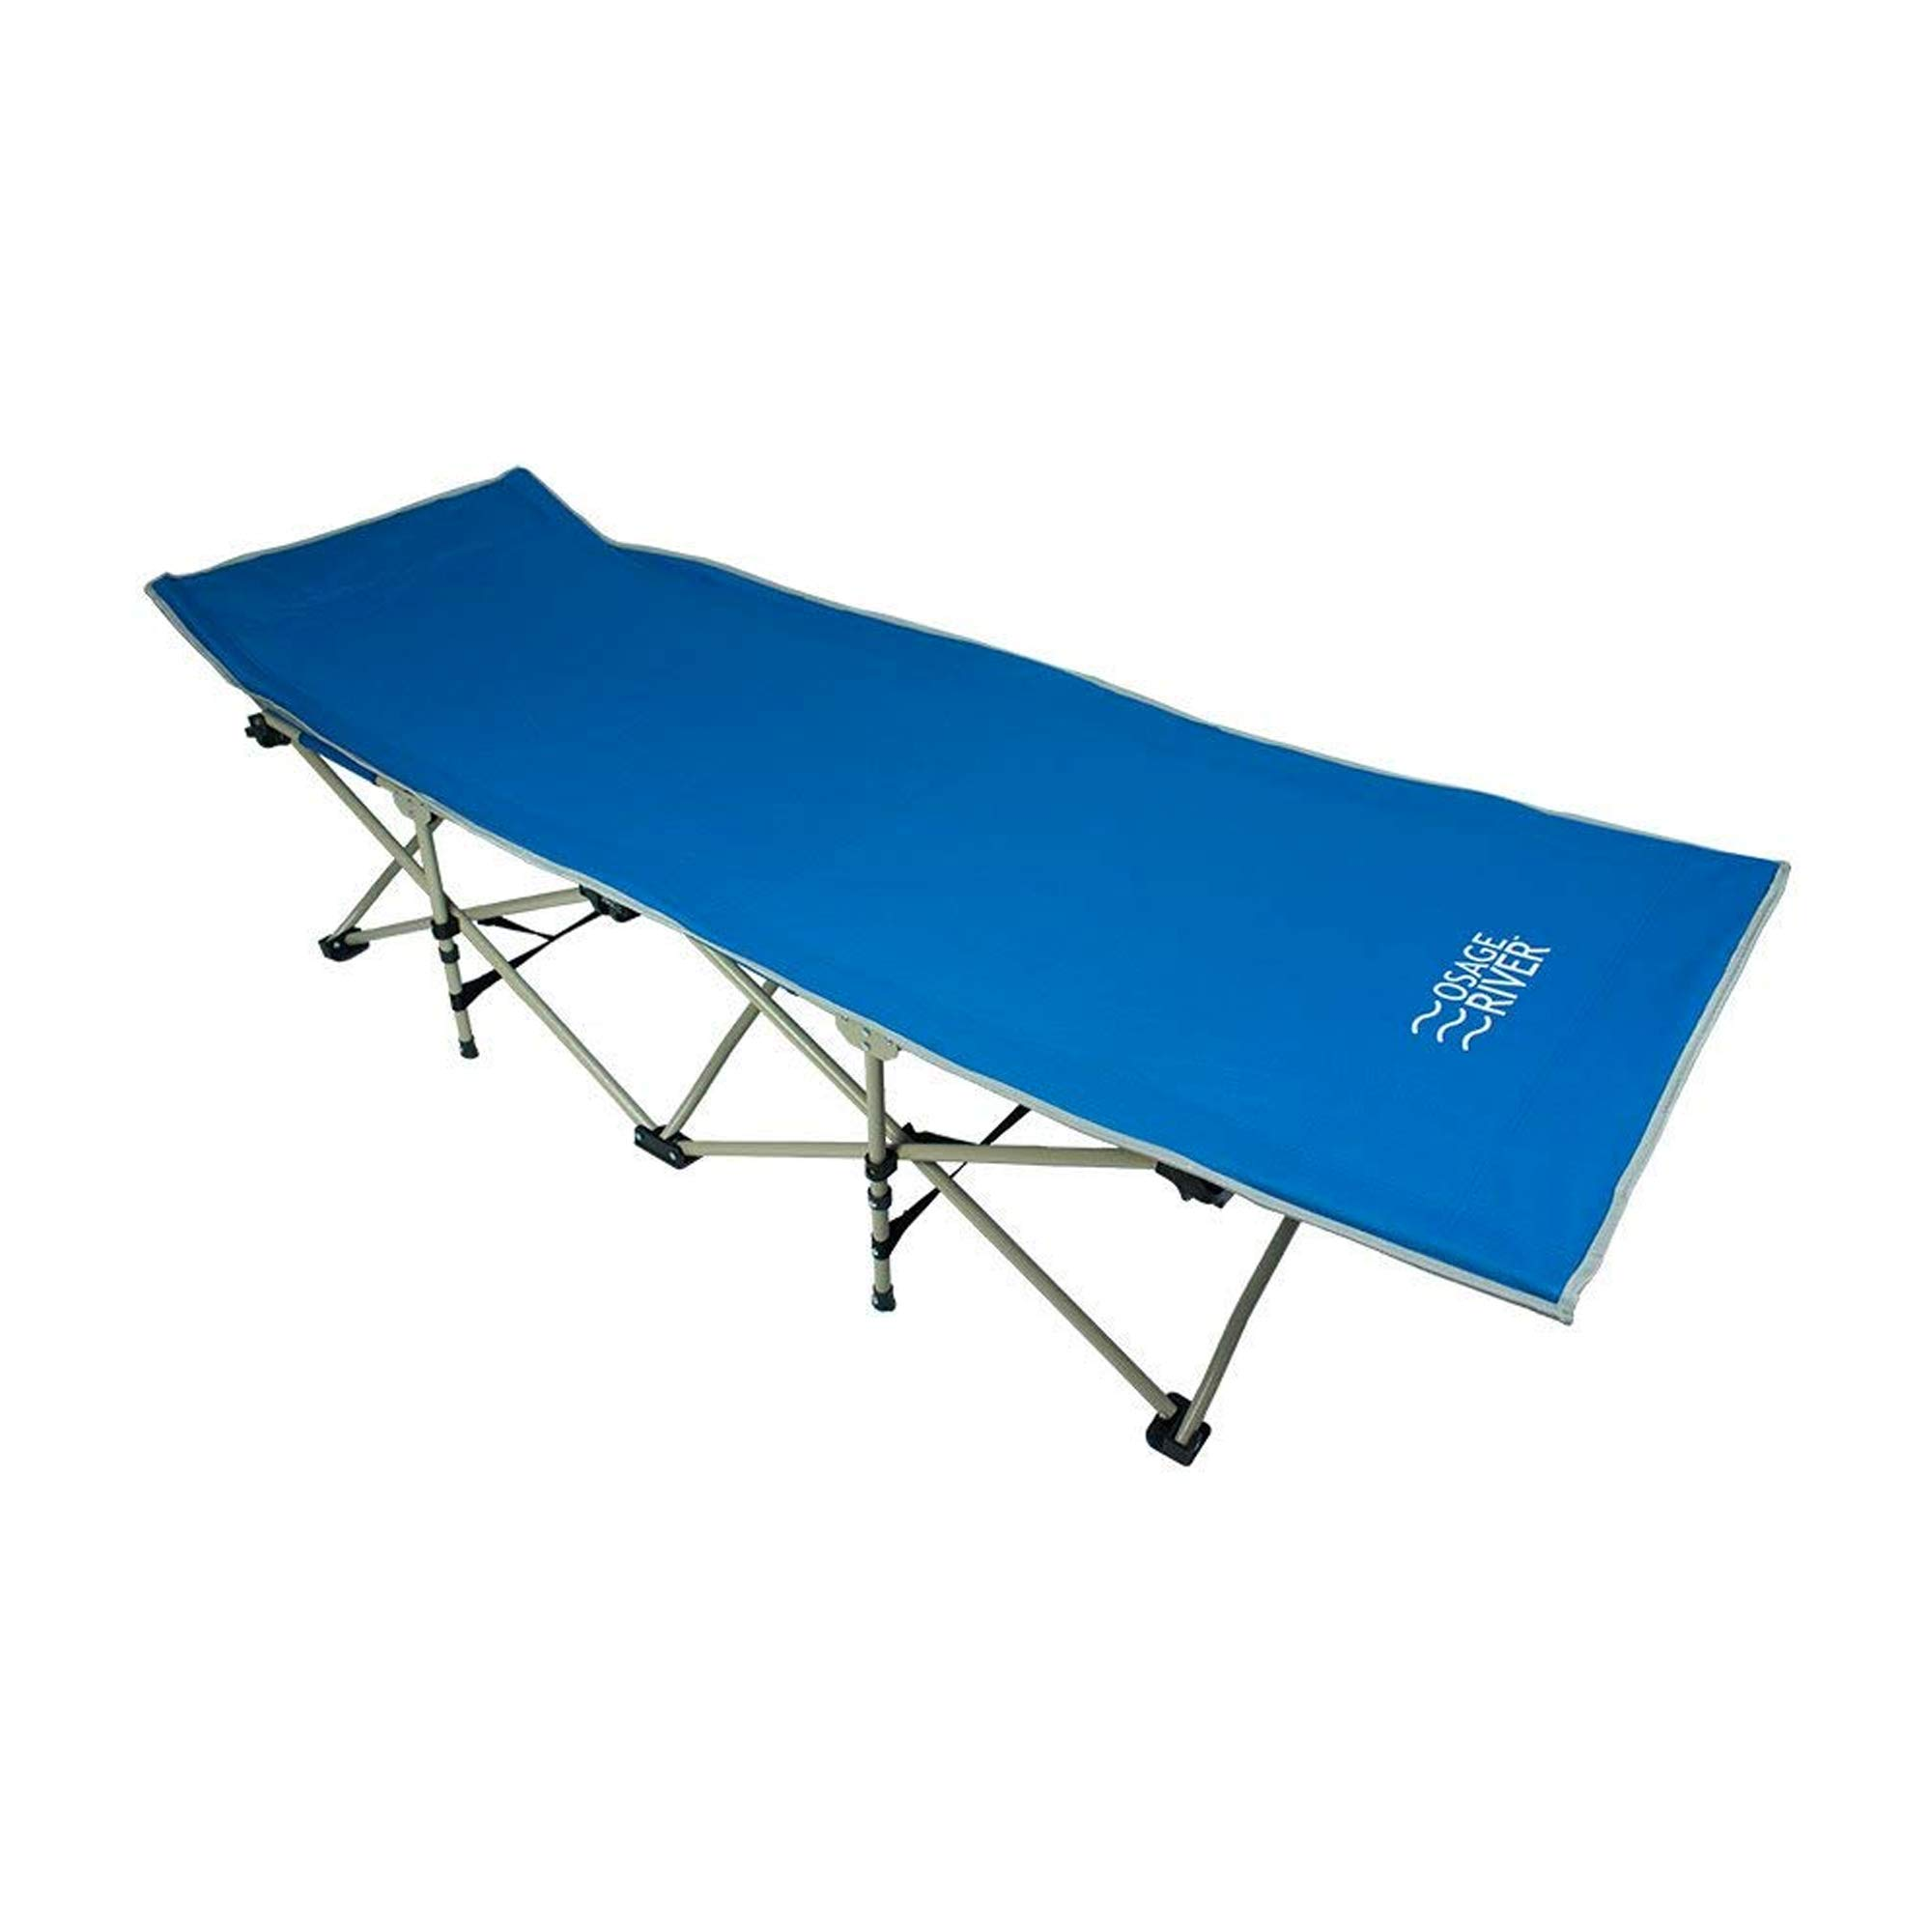 OSAGE RIVER Folding Camping Cot with Carry Bag, Portable and Lightweight Bed for Adults or Kids, Blue by OSAGE RIVER